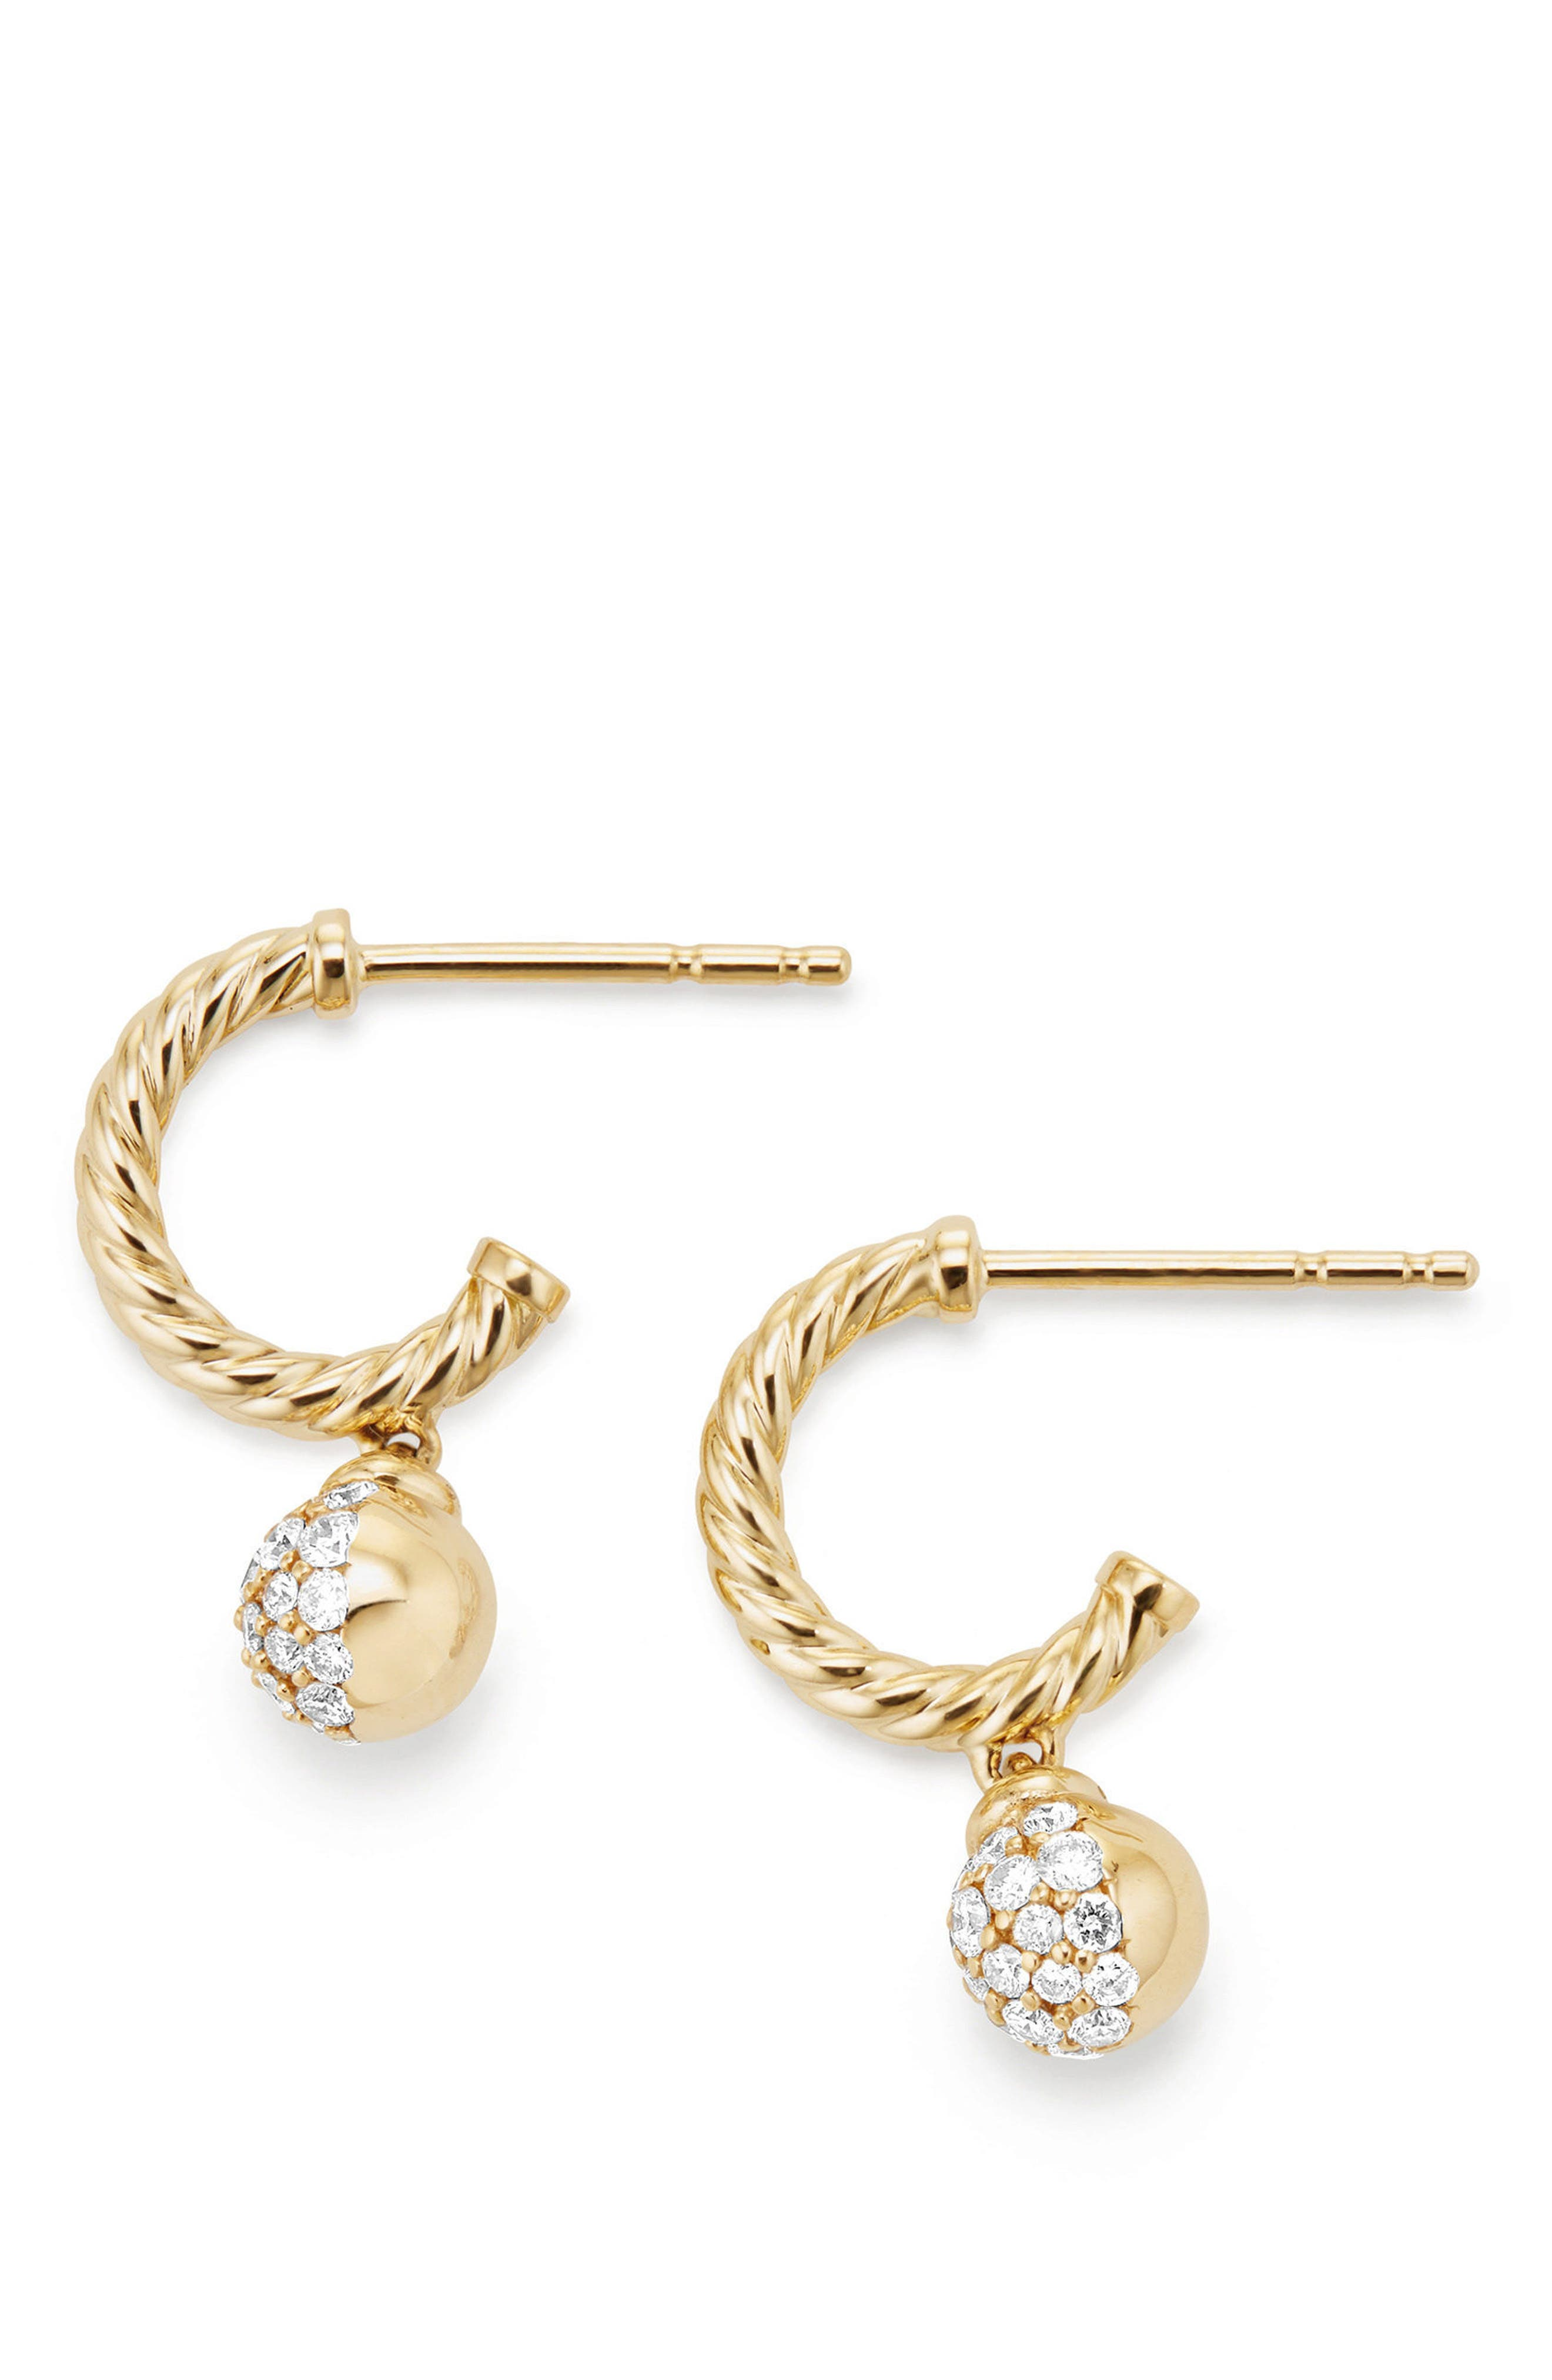 Petite Solari Hoop Pavé Earrings with Diamonds in 18K Gold,                             Main thumbnail 1, color,                             Yellow Gold/ Diamond